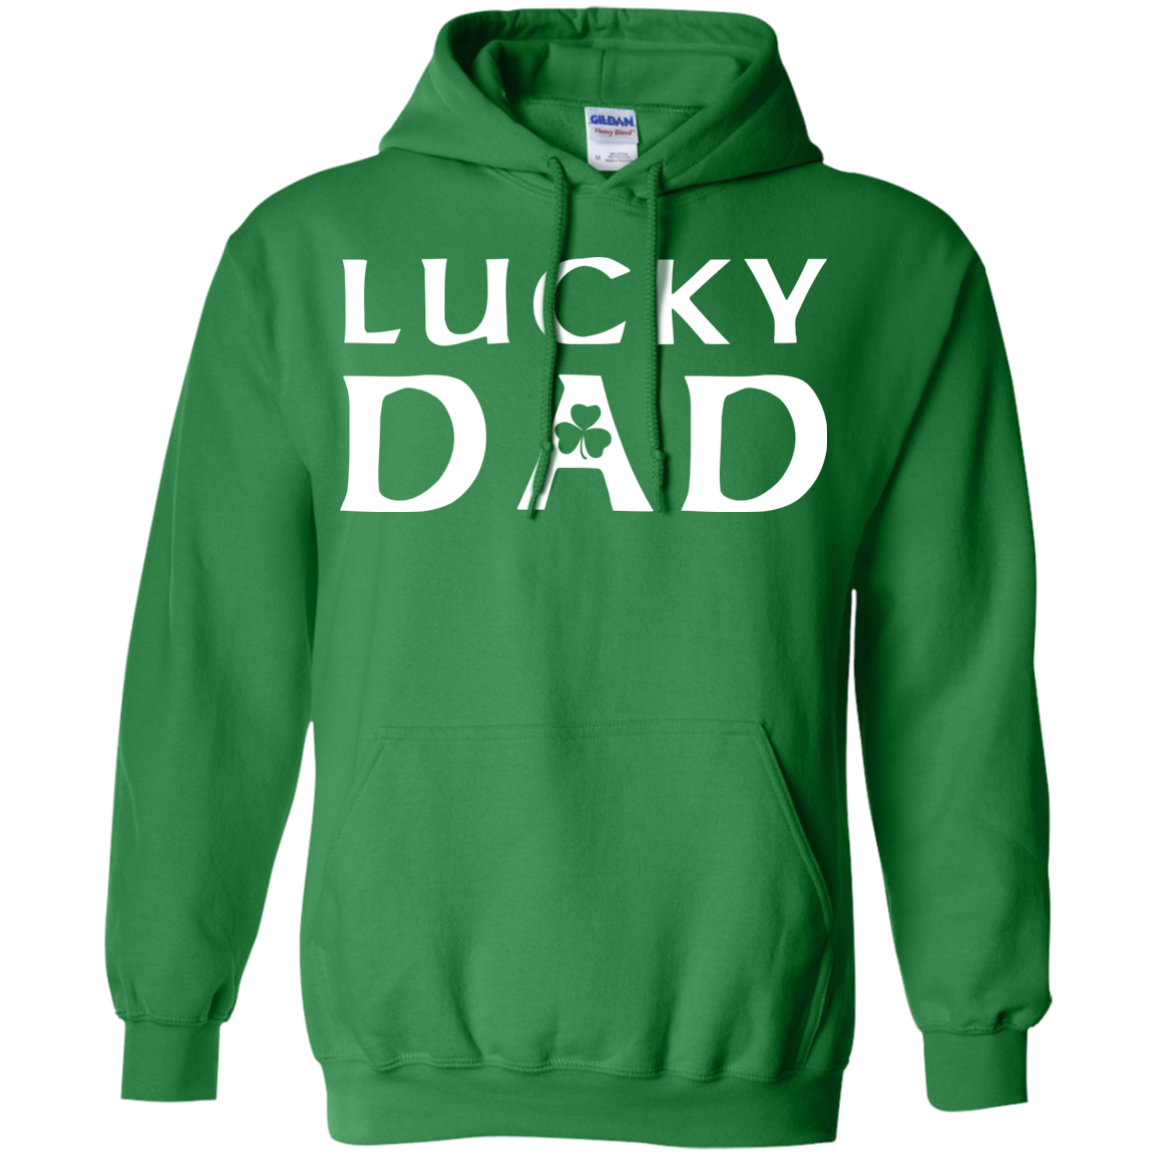 Irish Lucky Dad St Patricks Day St Patrick's Day Shirts For Men Irish Clothing - Blue Fox